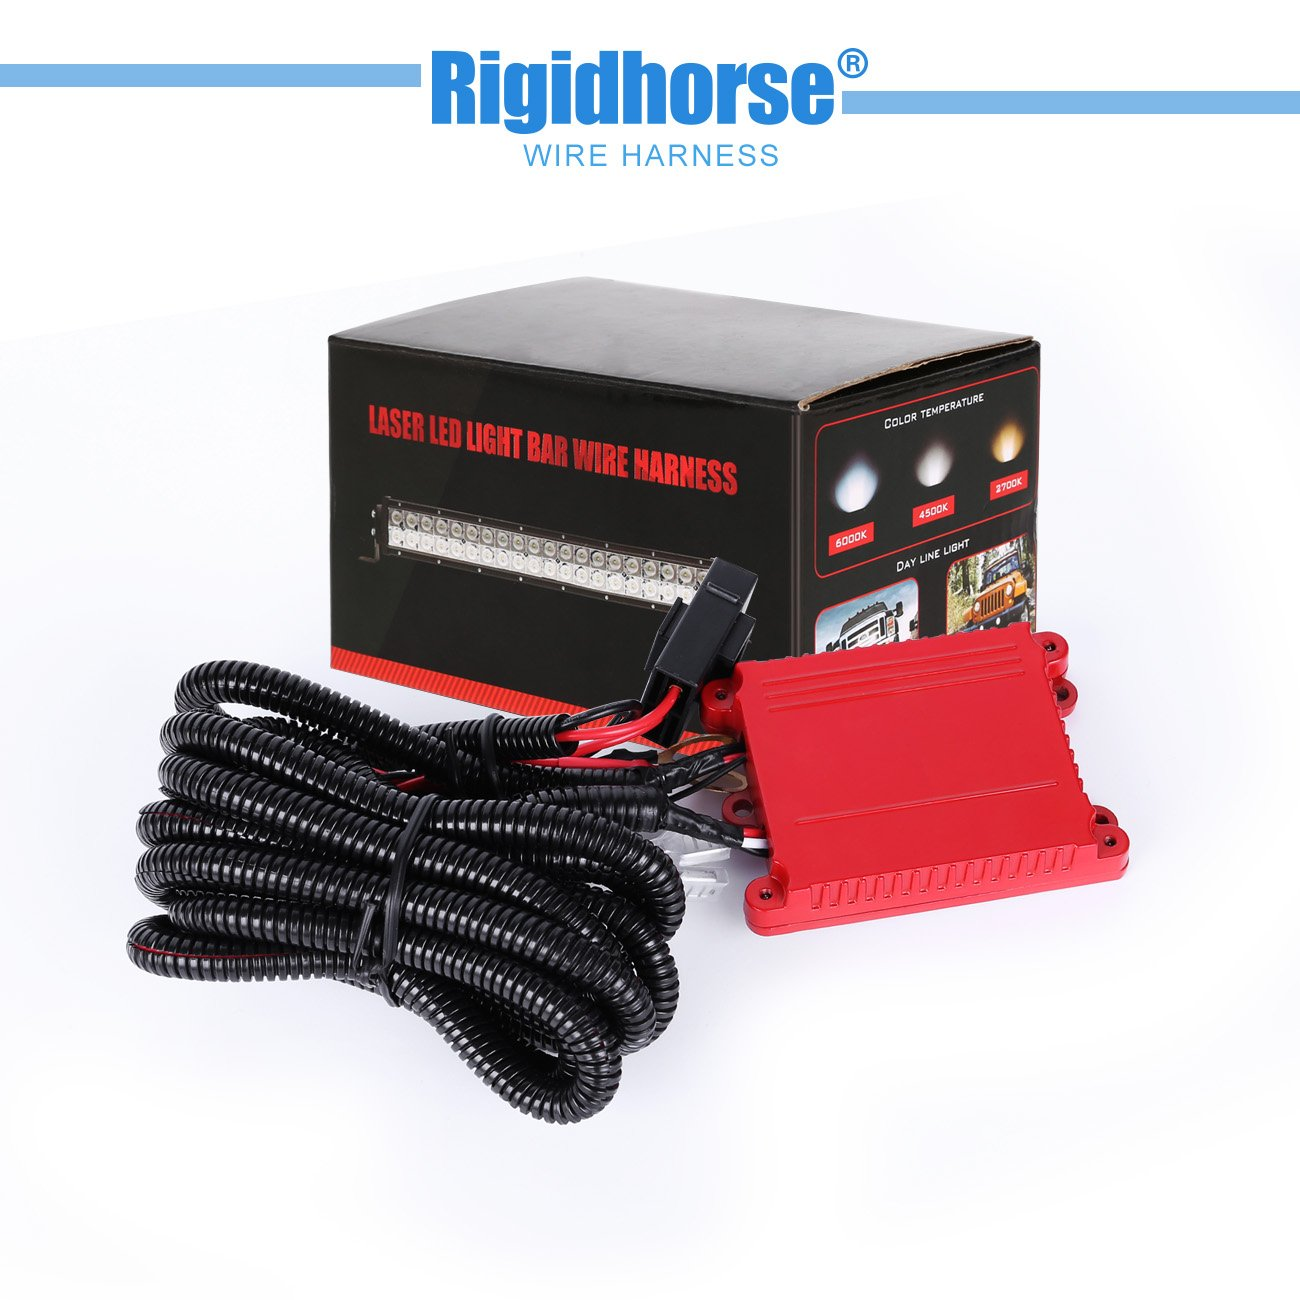 Light Bar Wiring Harness Rigidhorse Remote Control Accessories Kit For Multi Color Led